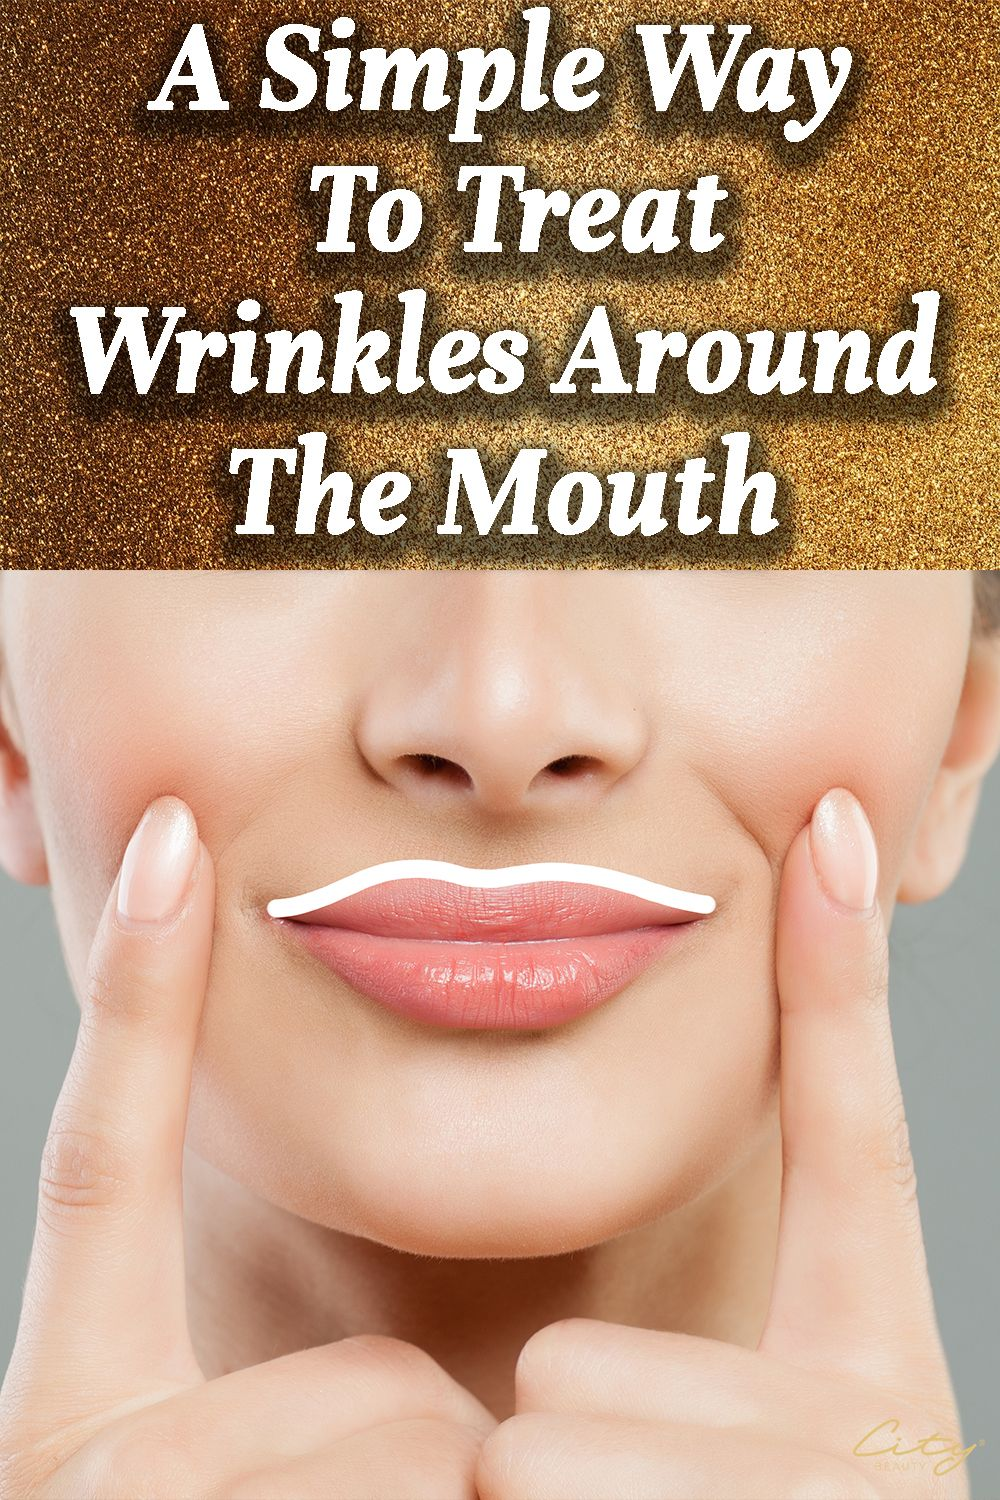 Pin by pat ebert on Health (With images) Plump lips